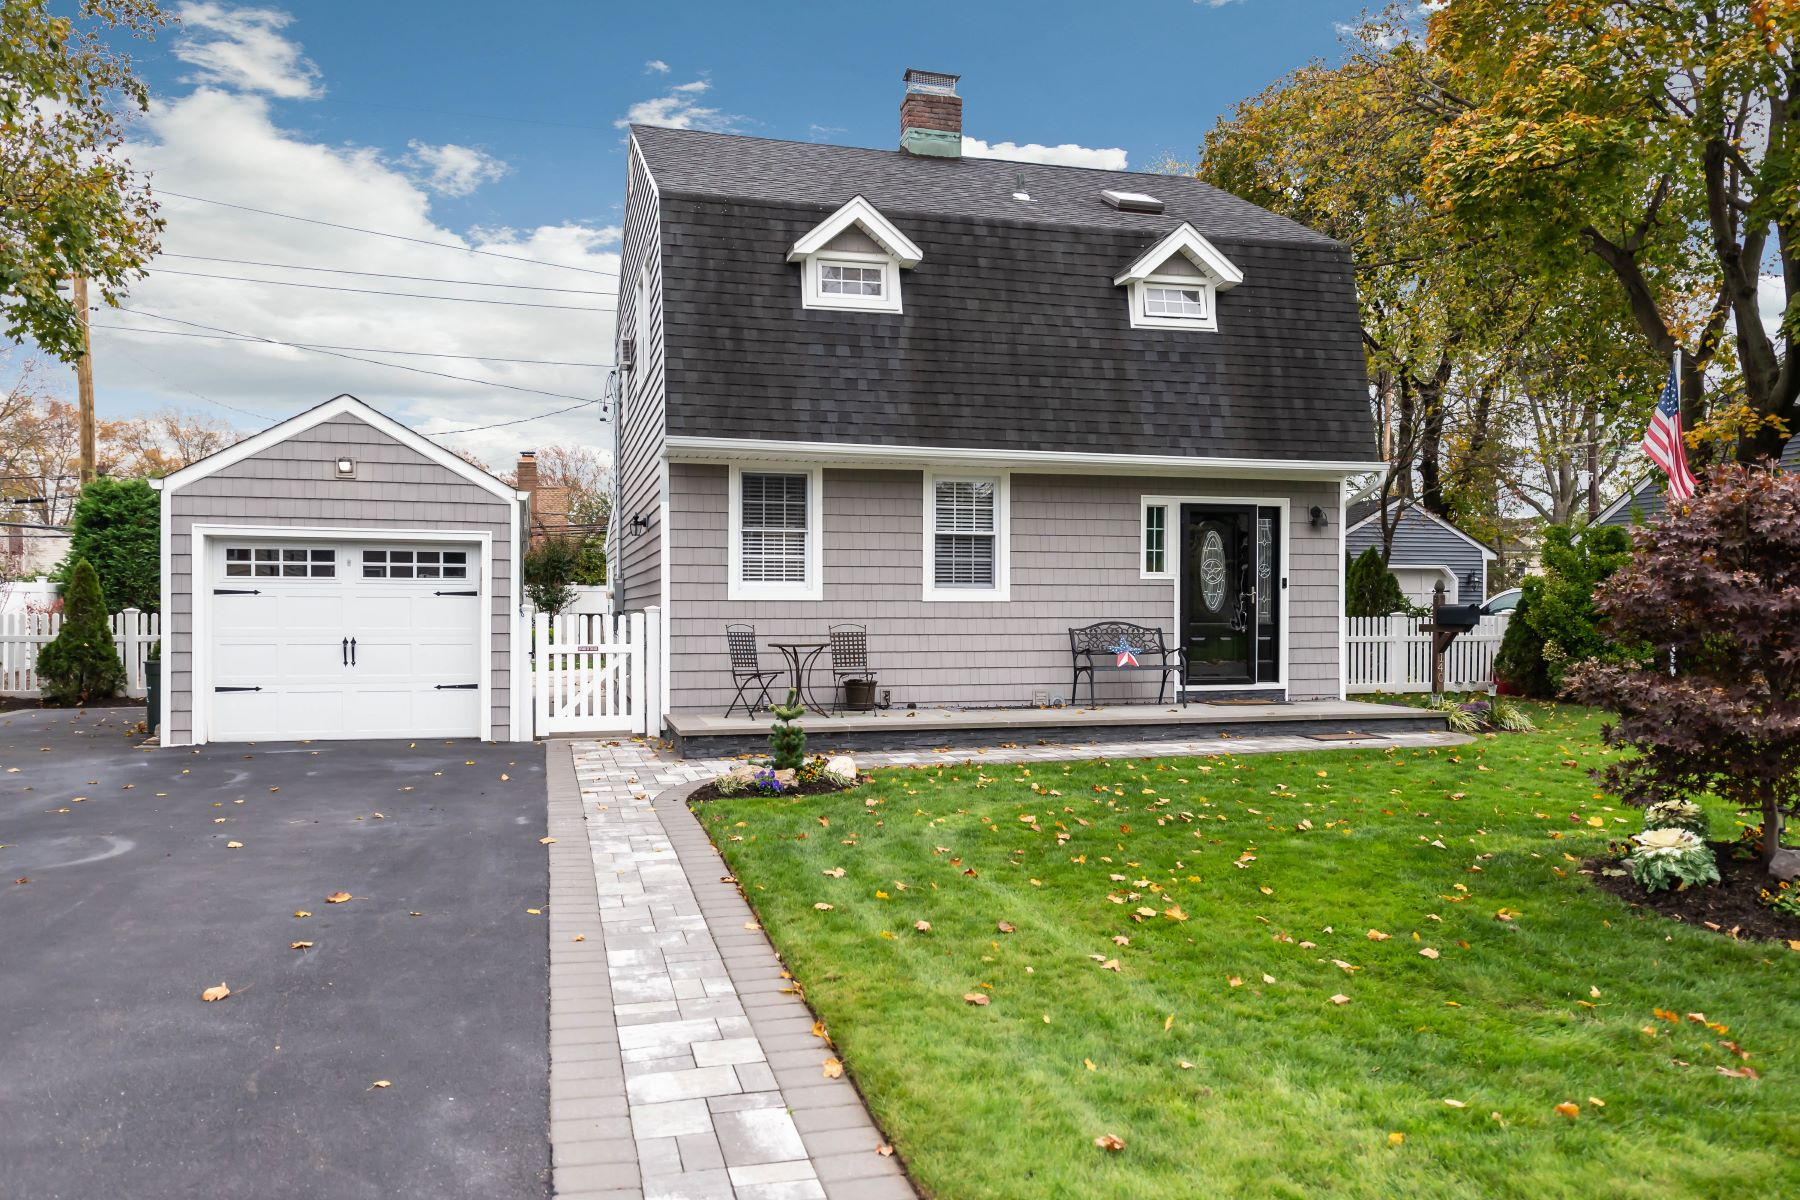 Single Family Homes for Sale at Westbury 140 Earl St Westbury, New York 11590 United States